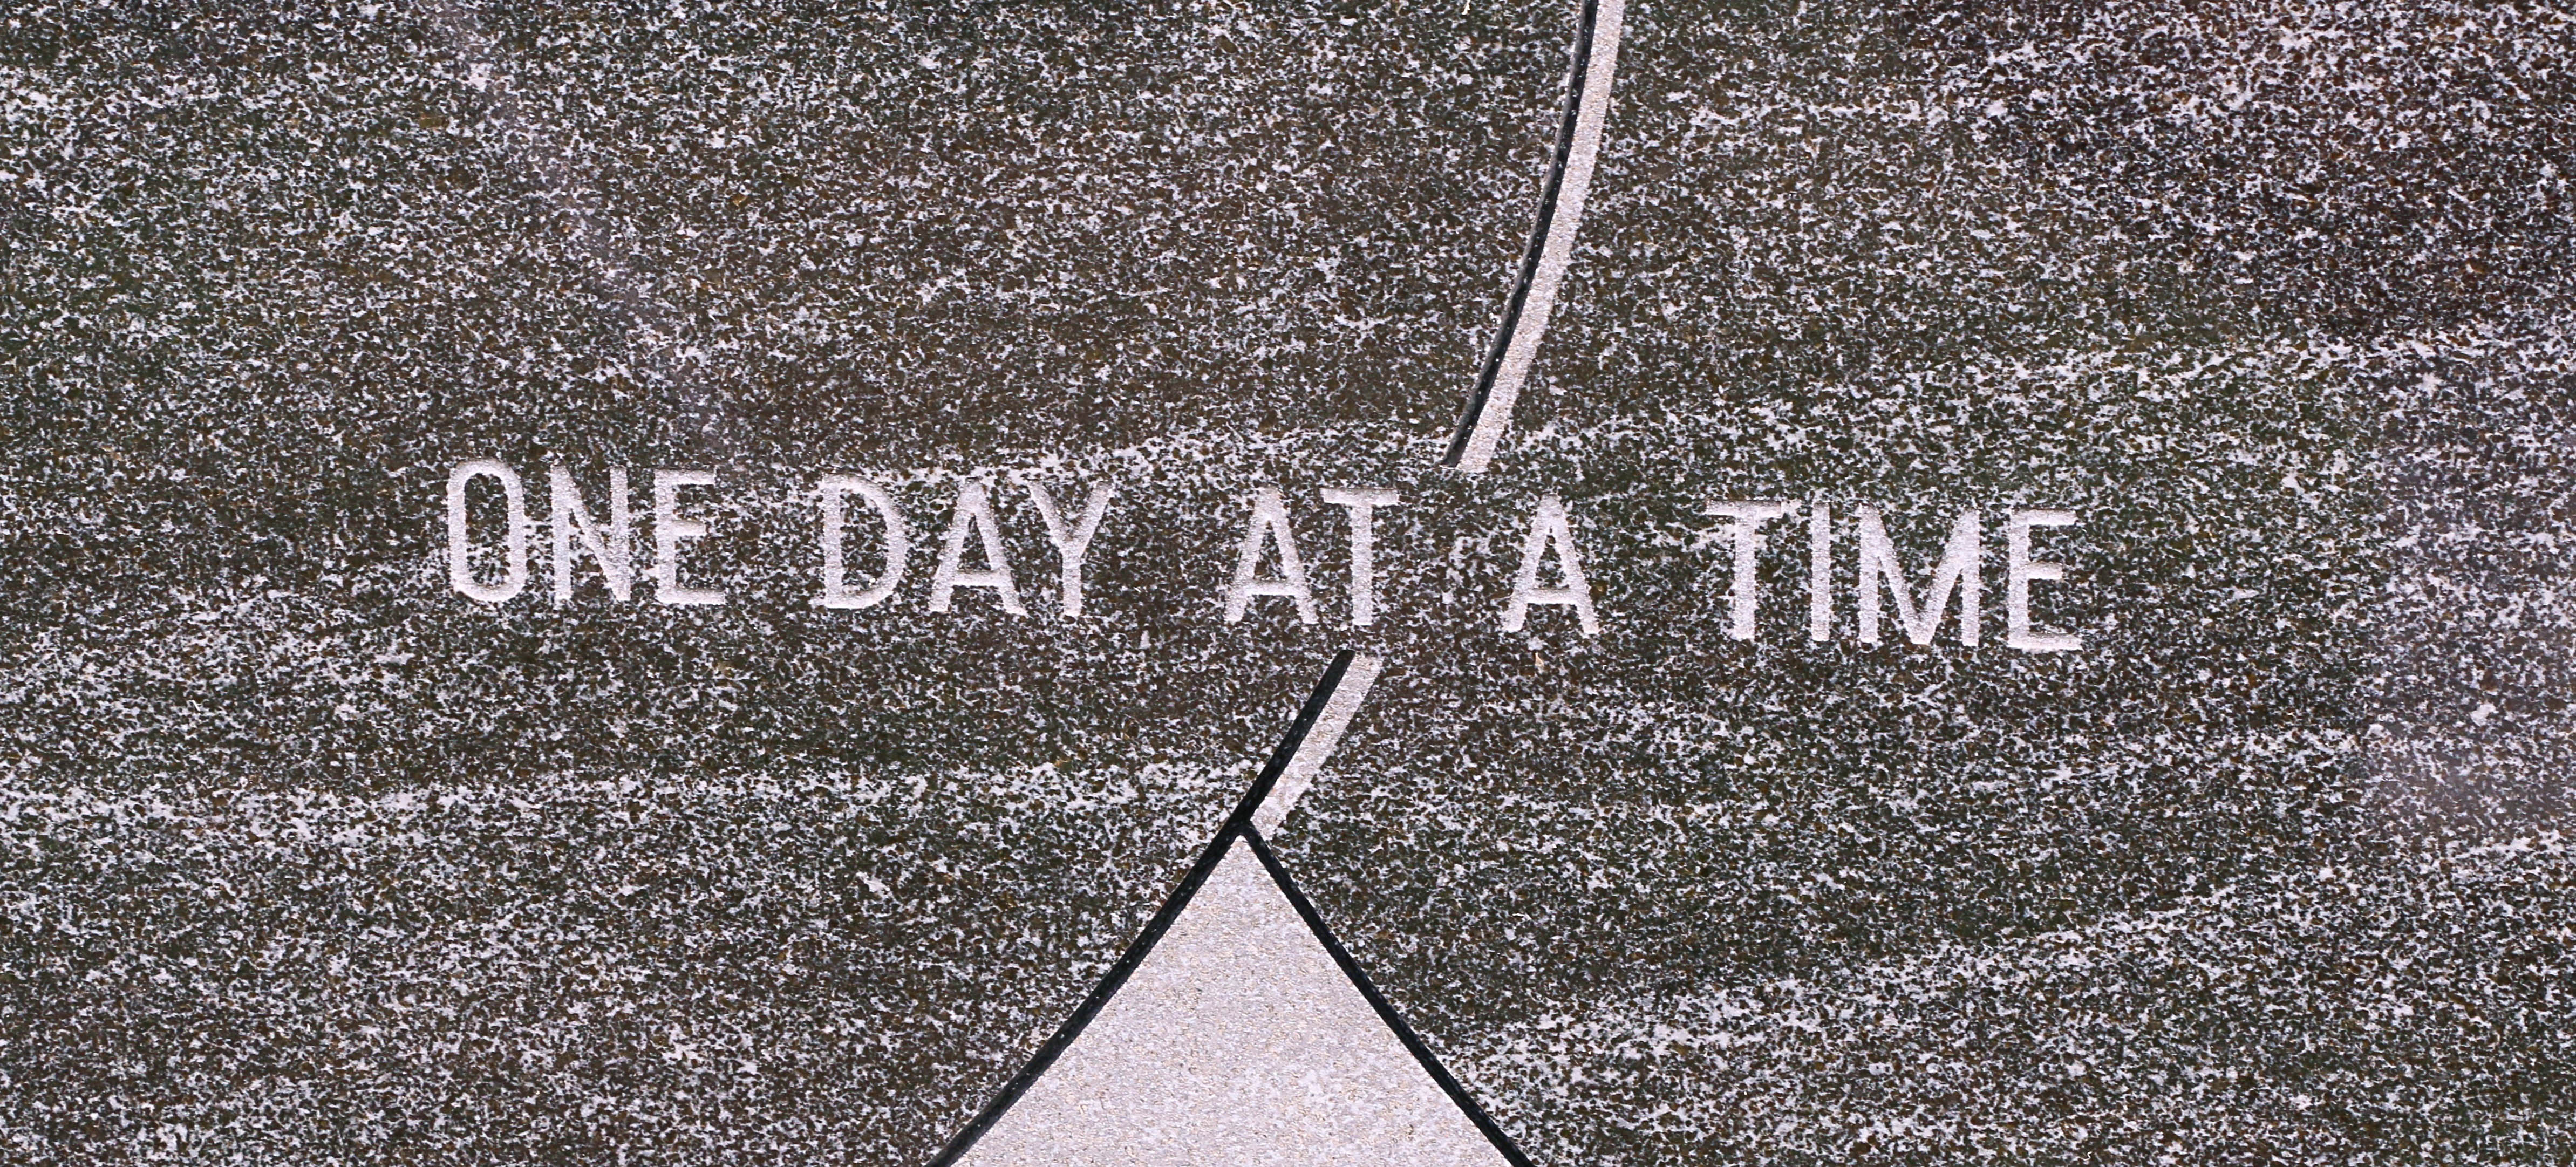 Headstone close-up